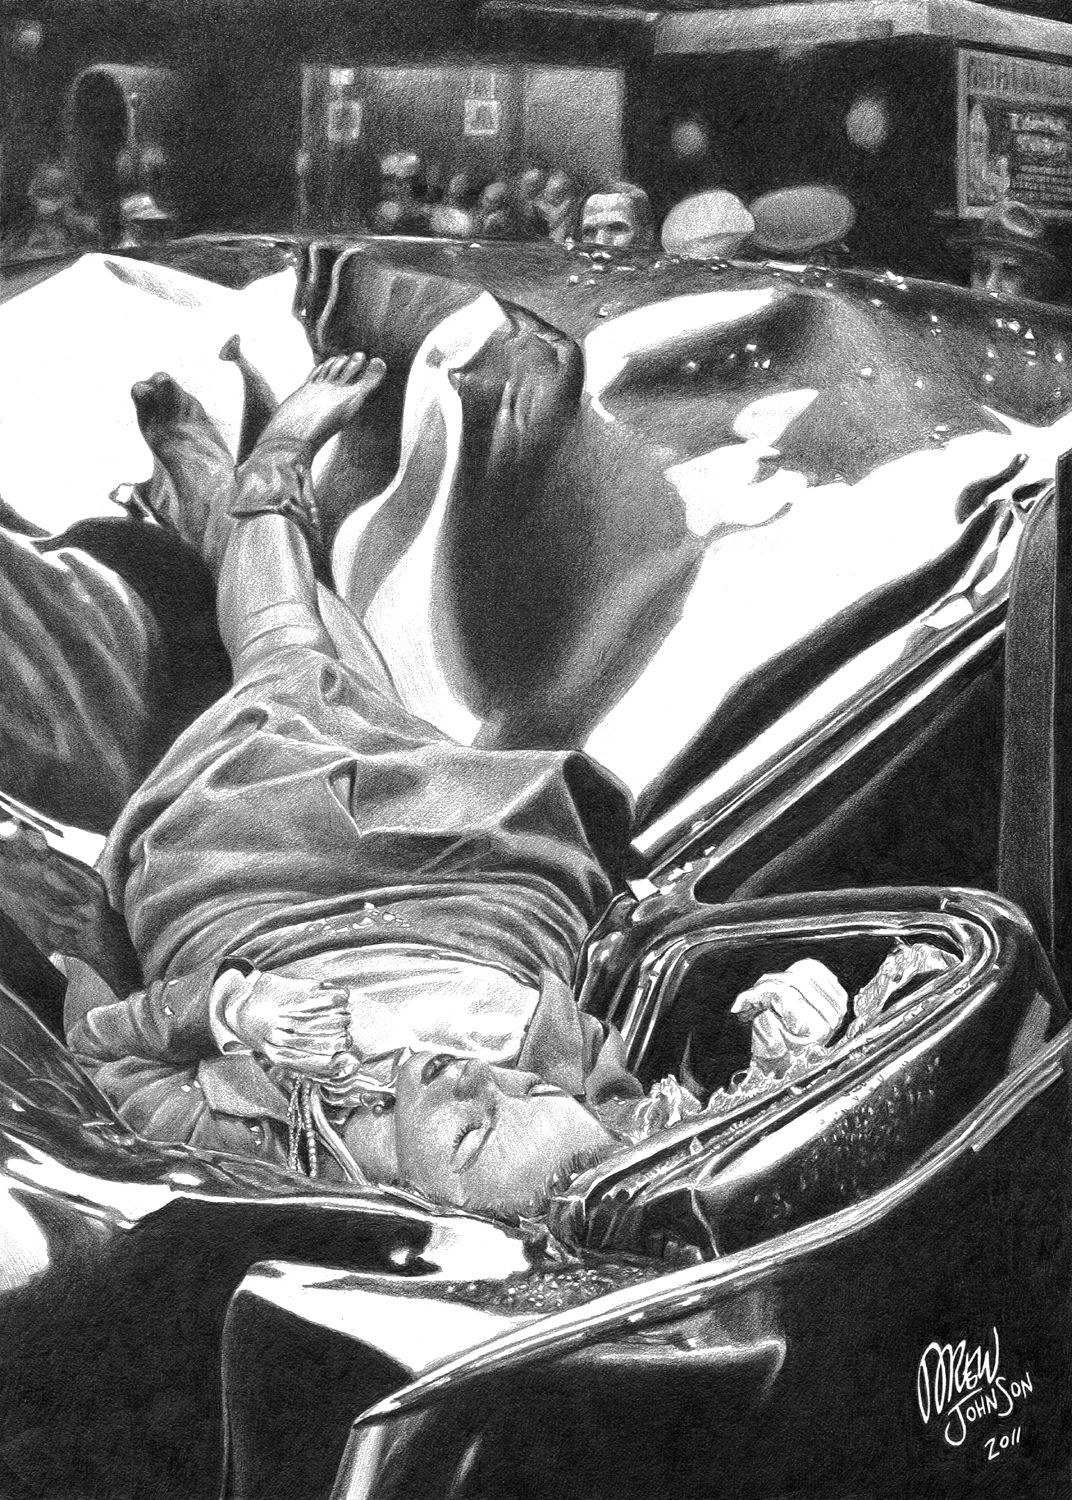 evelyn mchale figure drawings pinterest empire state building